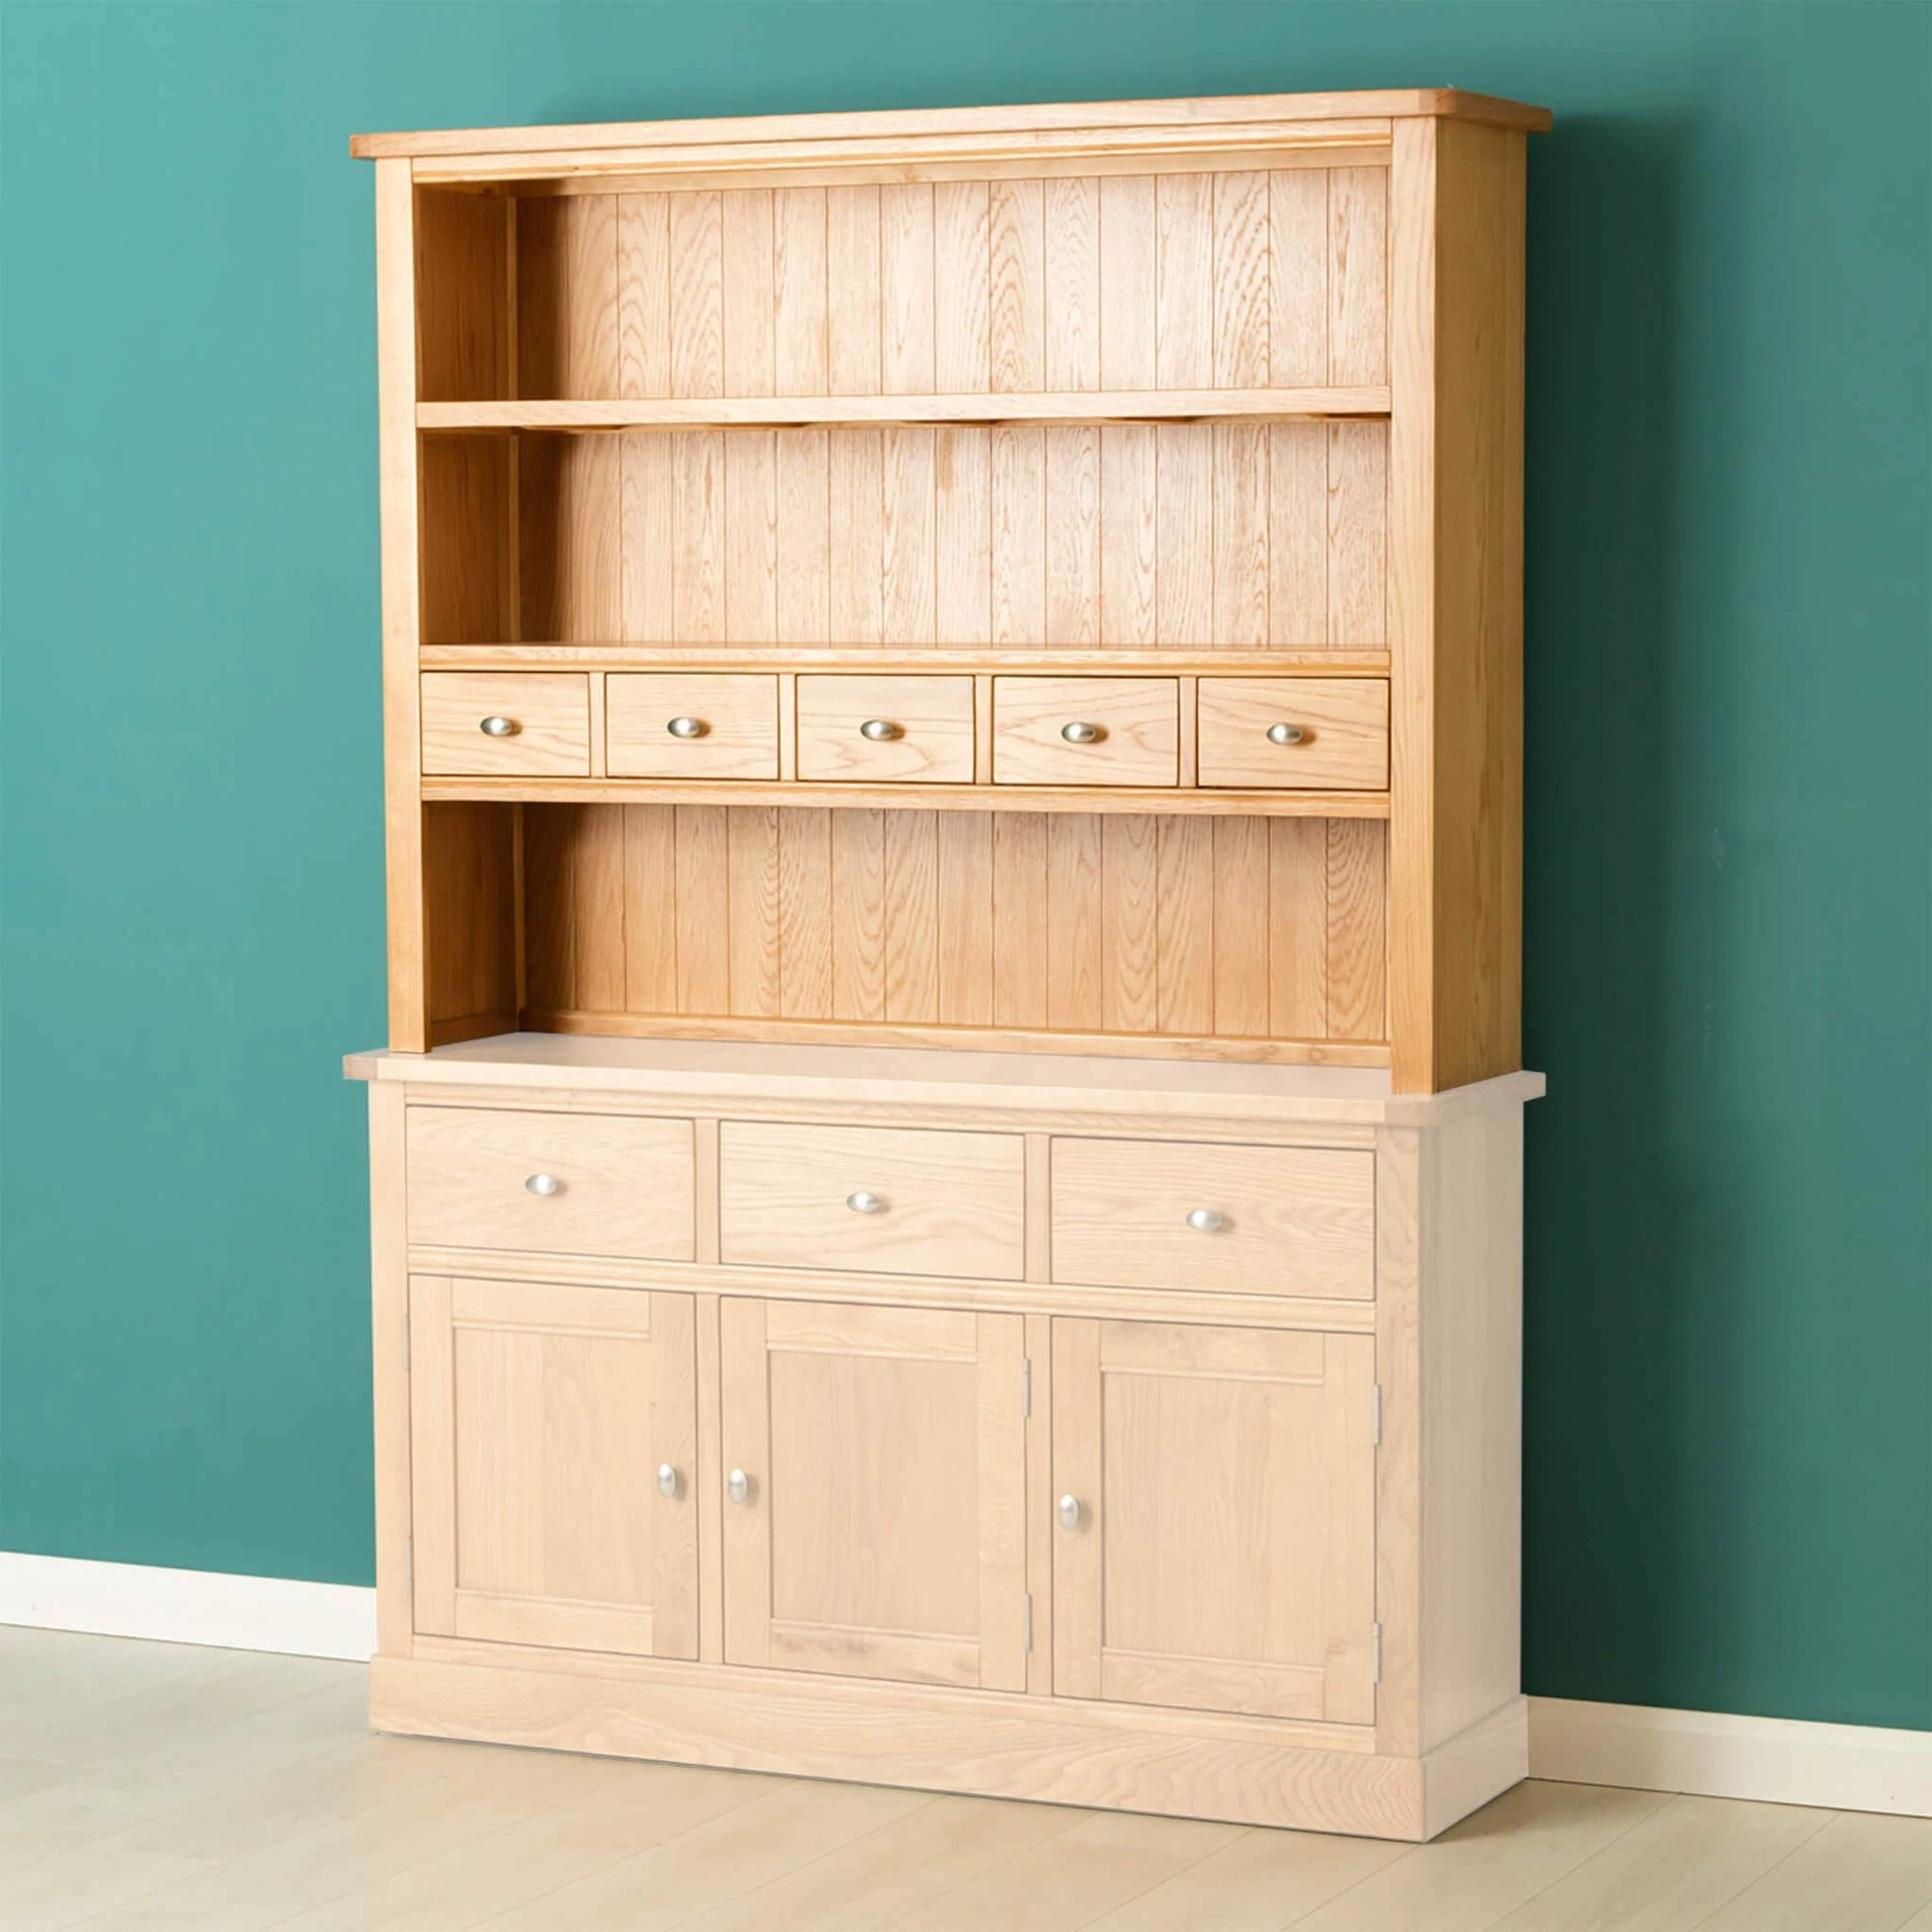 Hampshire Oak Dresser Hutch by Roseland Furniture